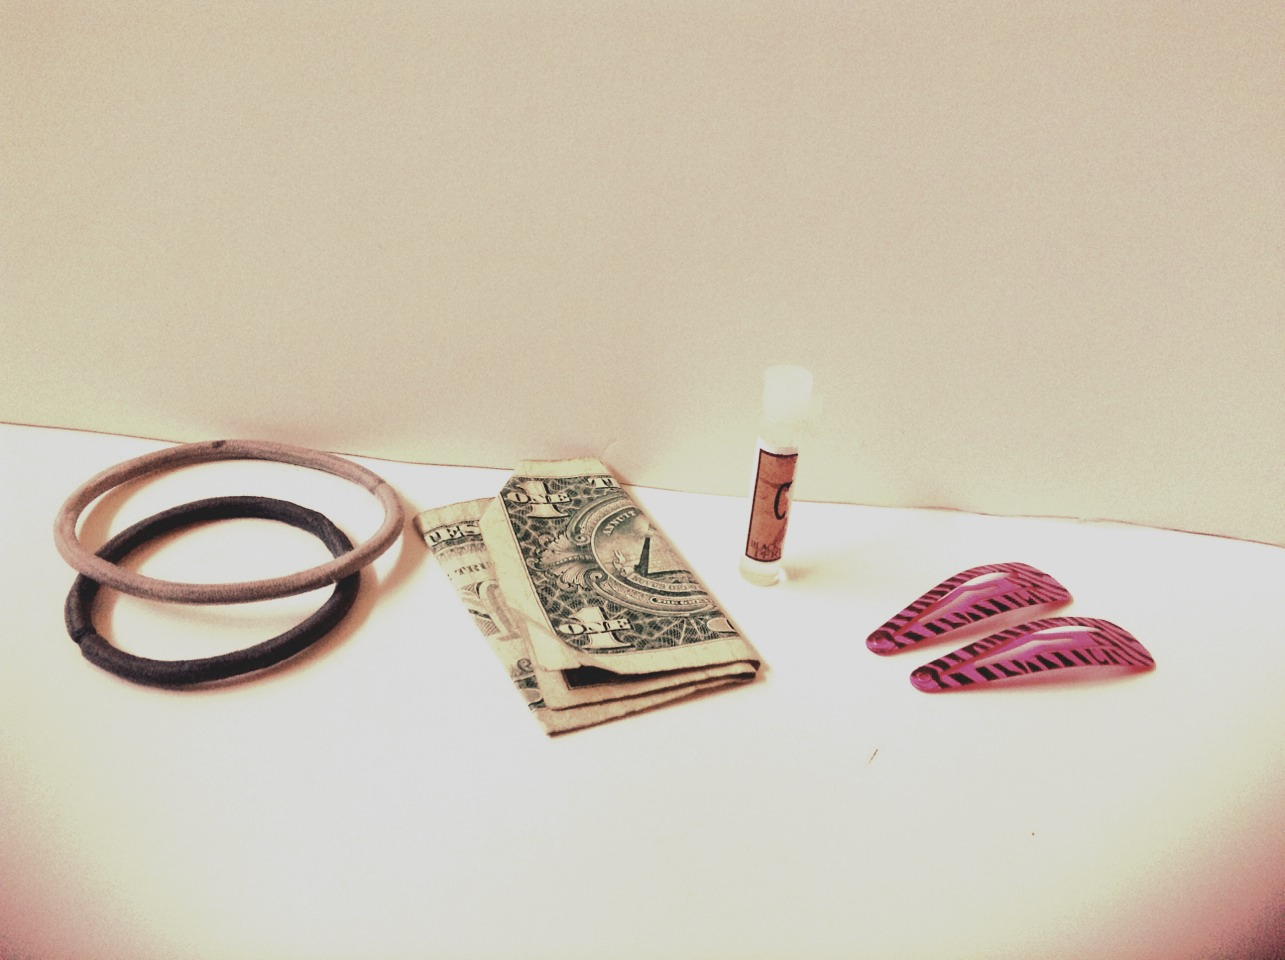 Some hair bands, cash, perfume sample and clips...